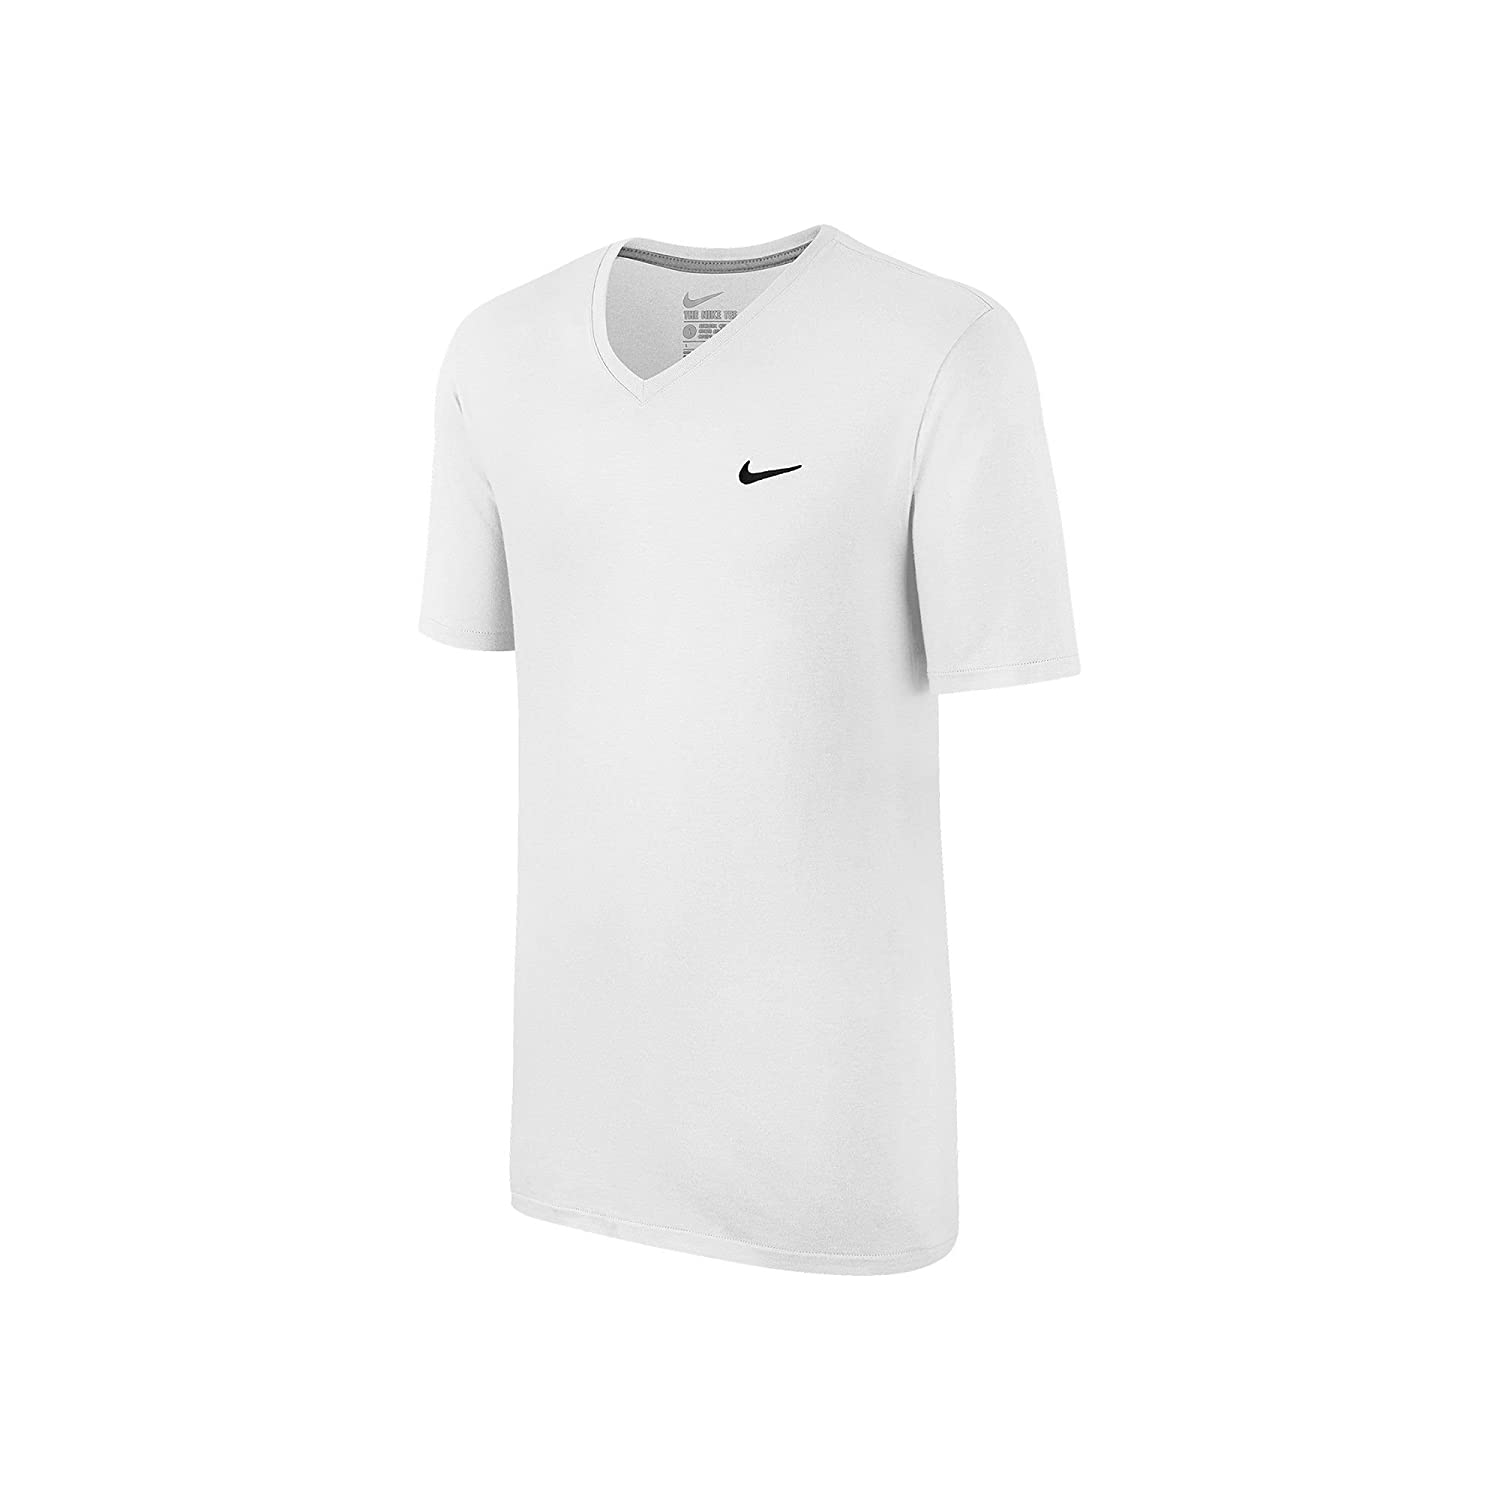 725237-100 MEN TEE-V NECK SWOOSH NIKE WHITE//BLACK